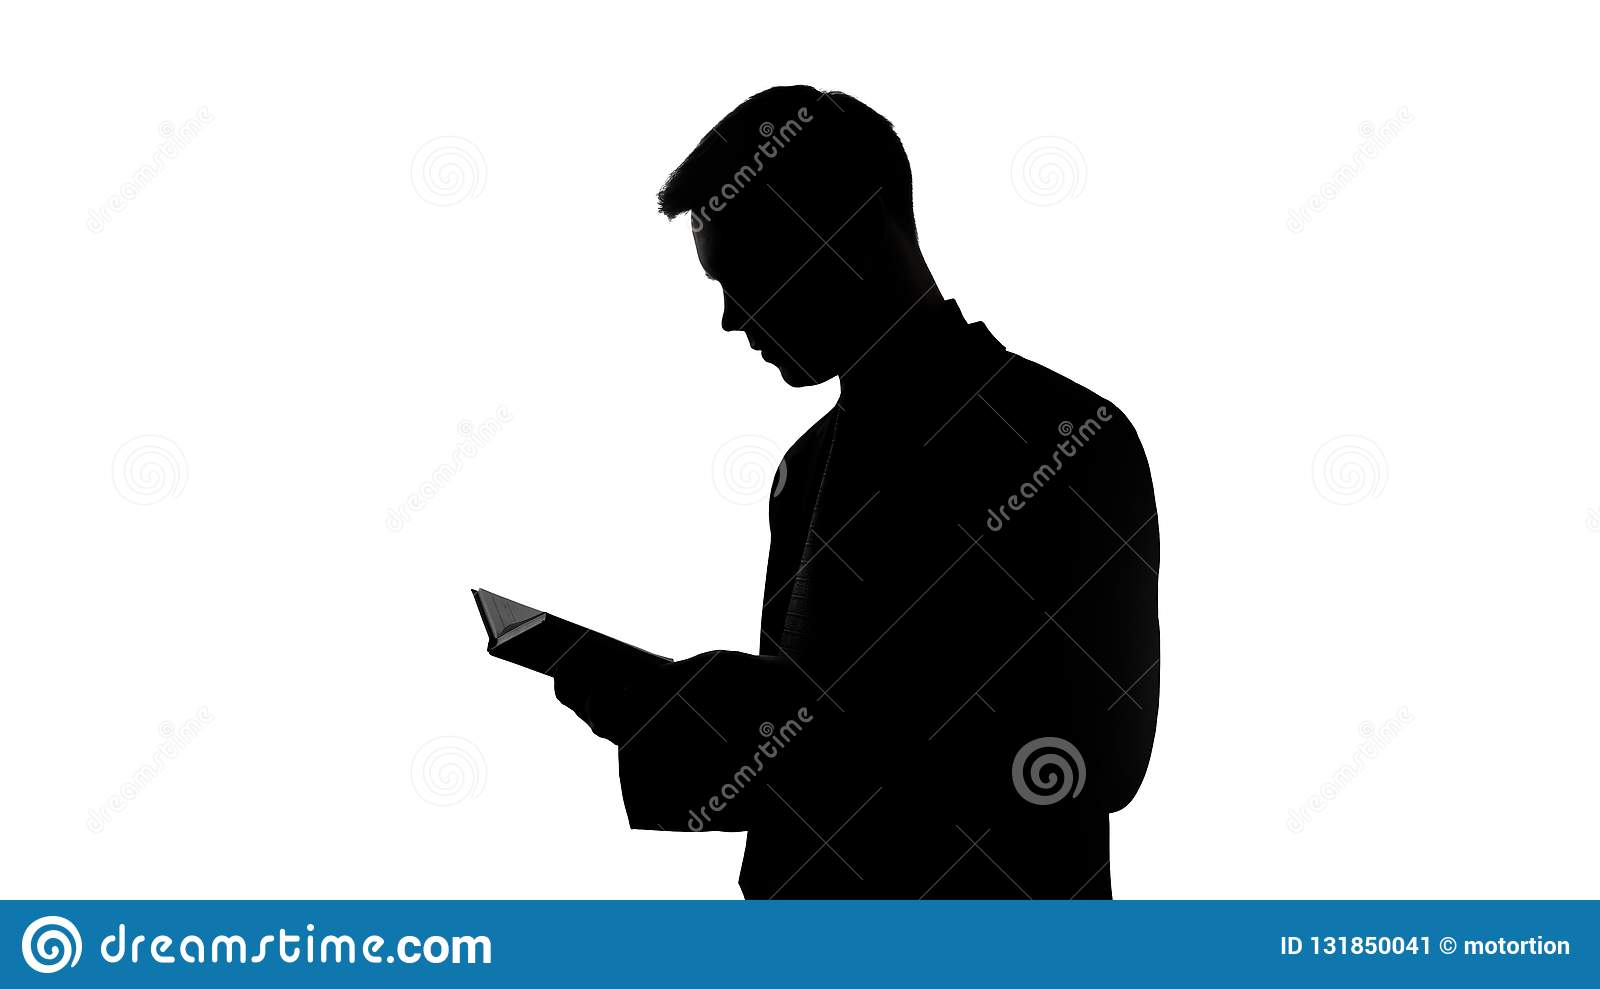 Silhouette of young businessman reading book, planning startup, ideas for future